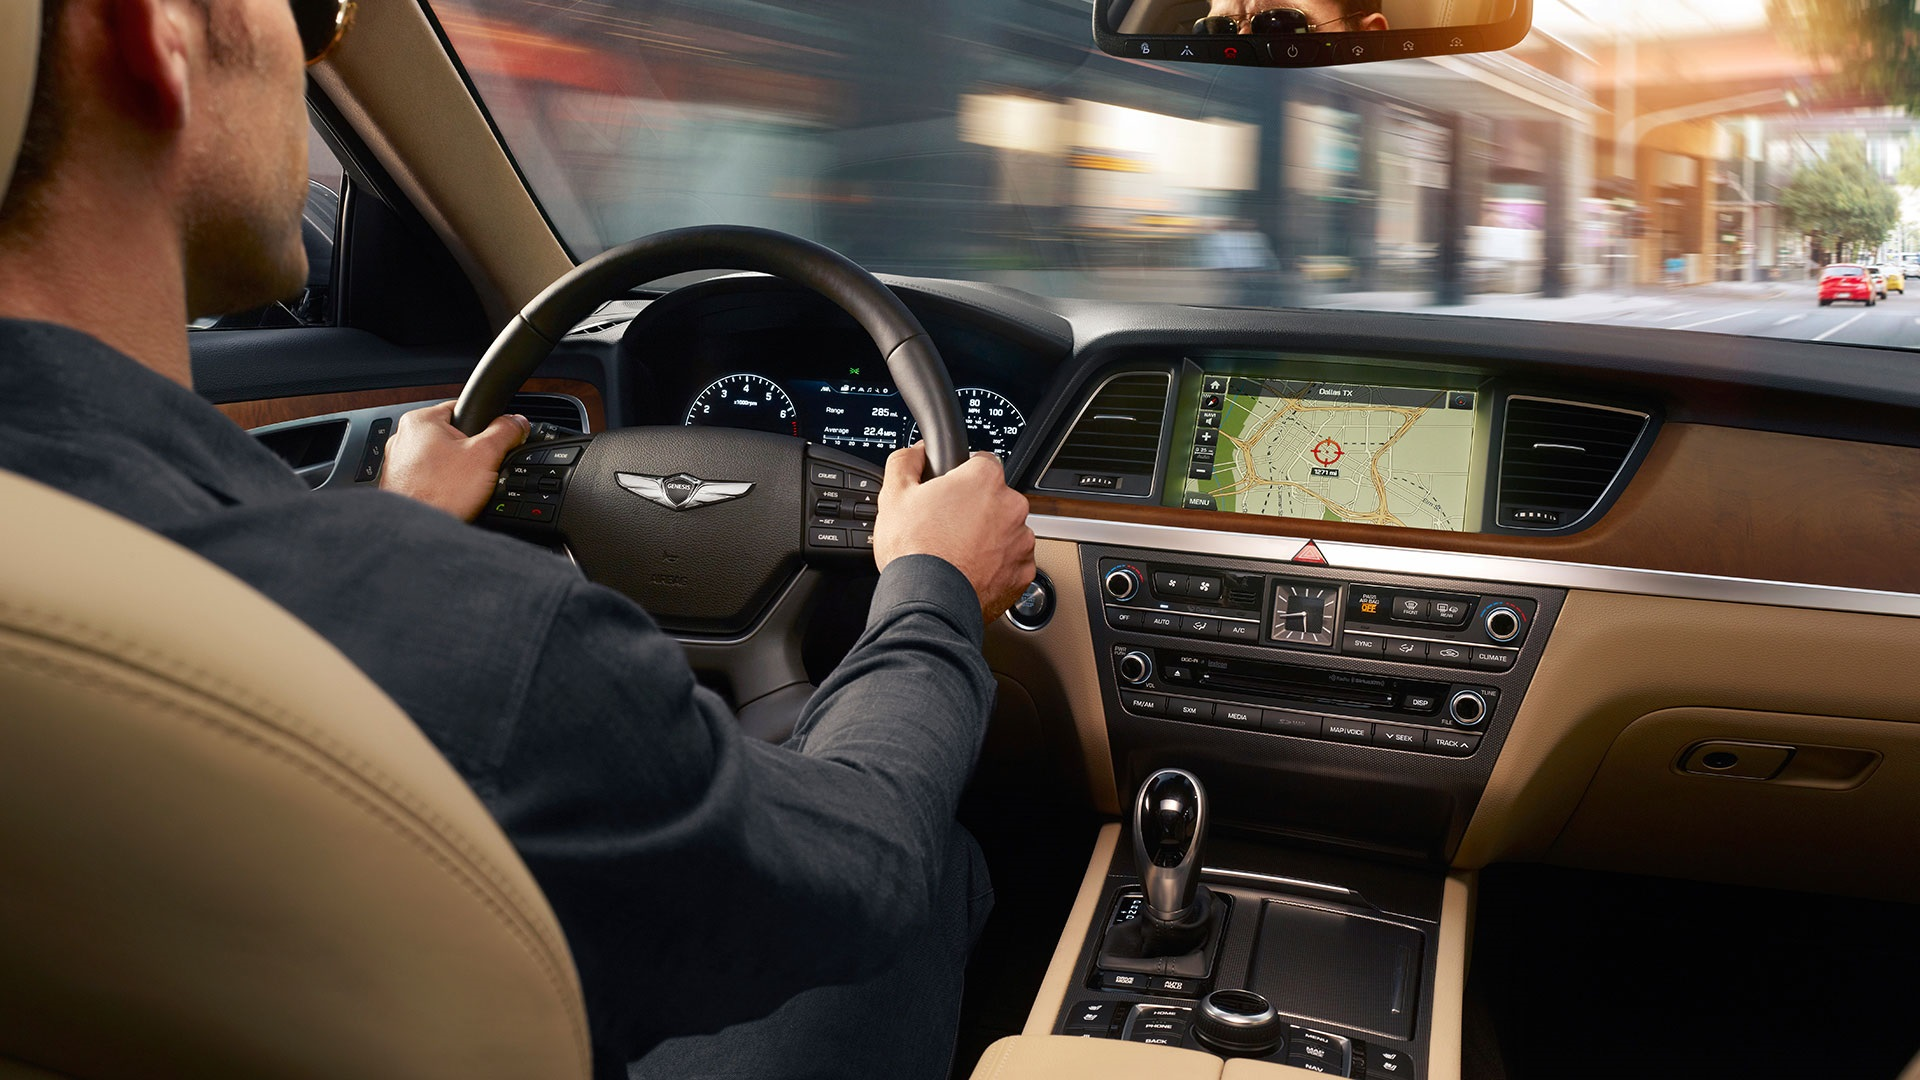 The G80 Ultimate Navigation System